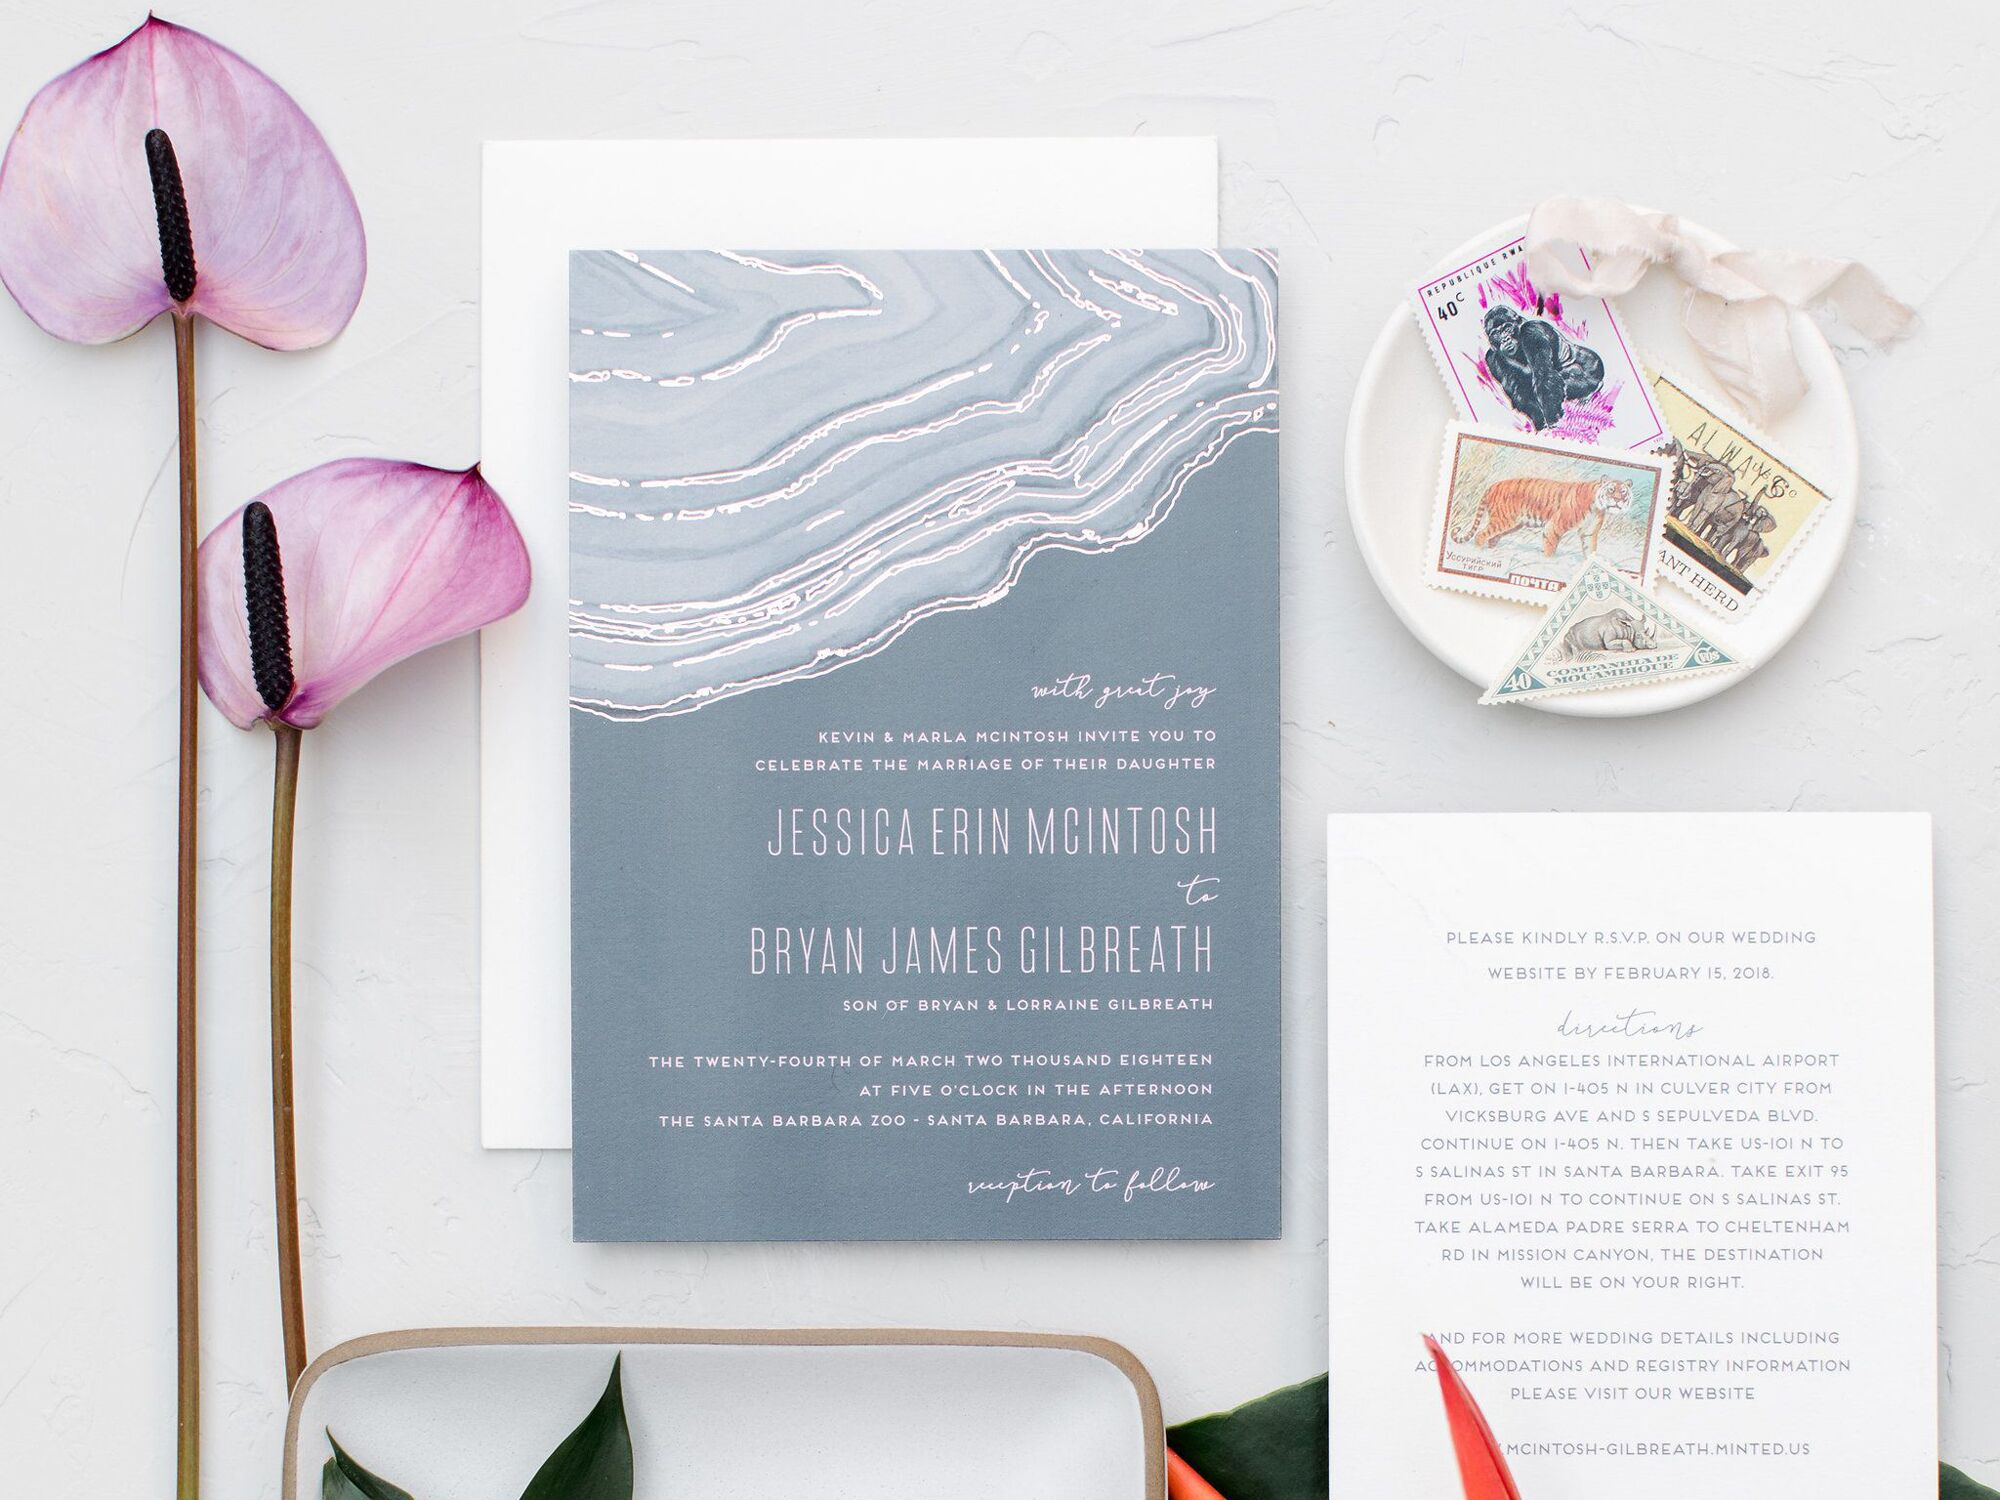 The National Average Cost Of Wedding Invitations In 2018